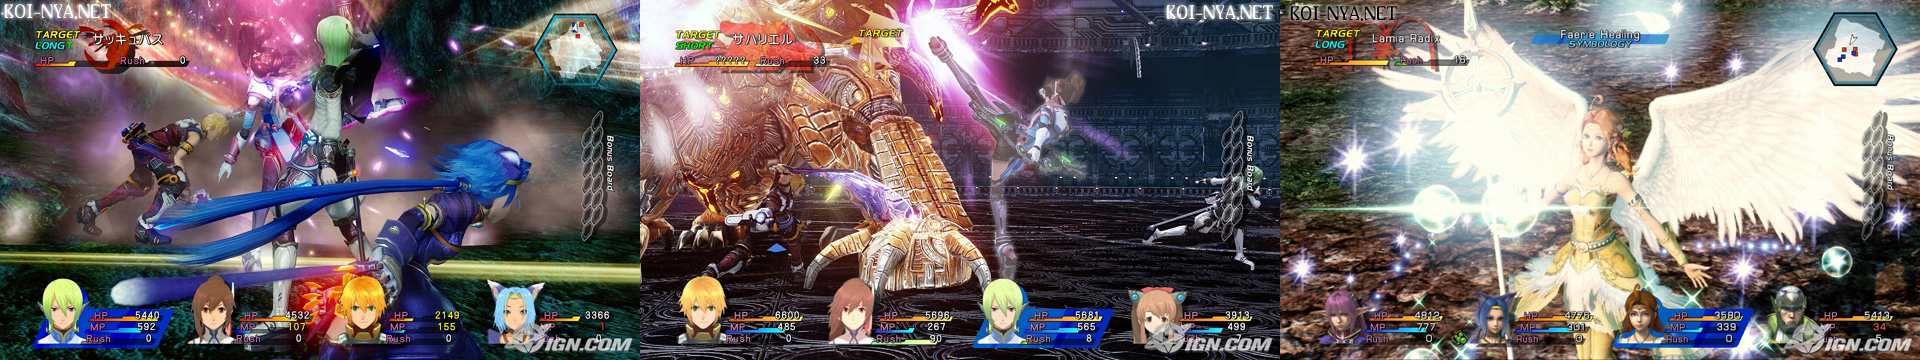 Star Ocean: The Last Hope - battle